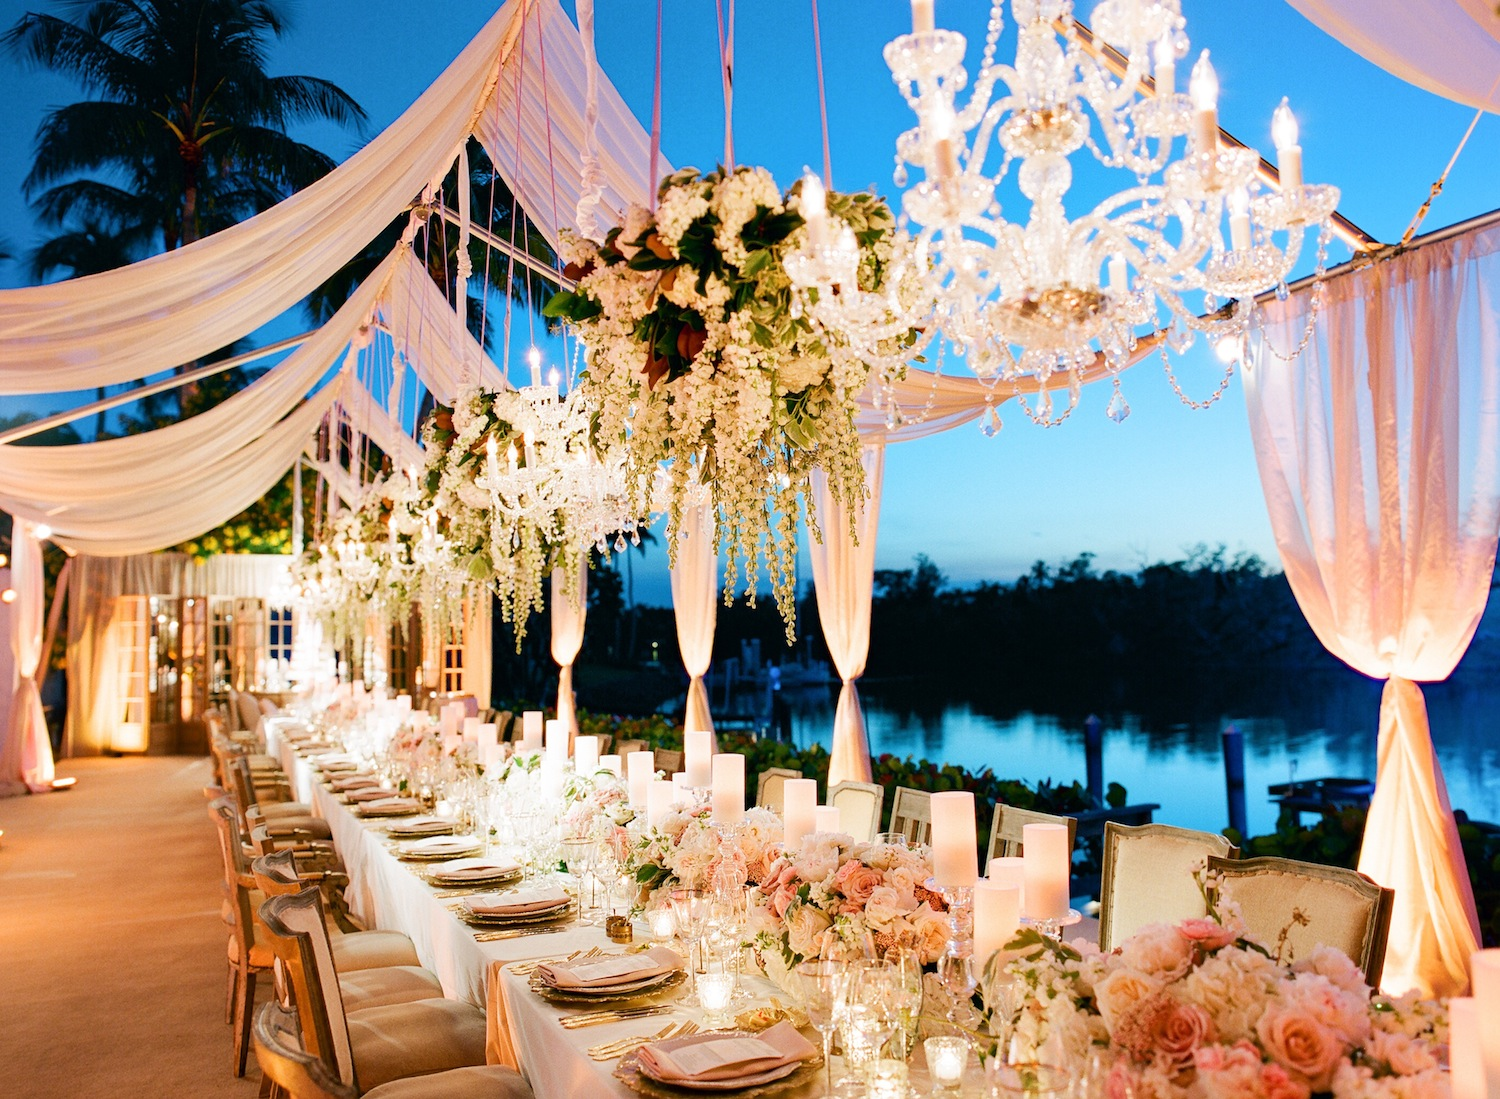 Sheer fabric open sided tent wedding reception outdoors Florida